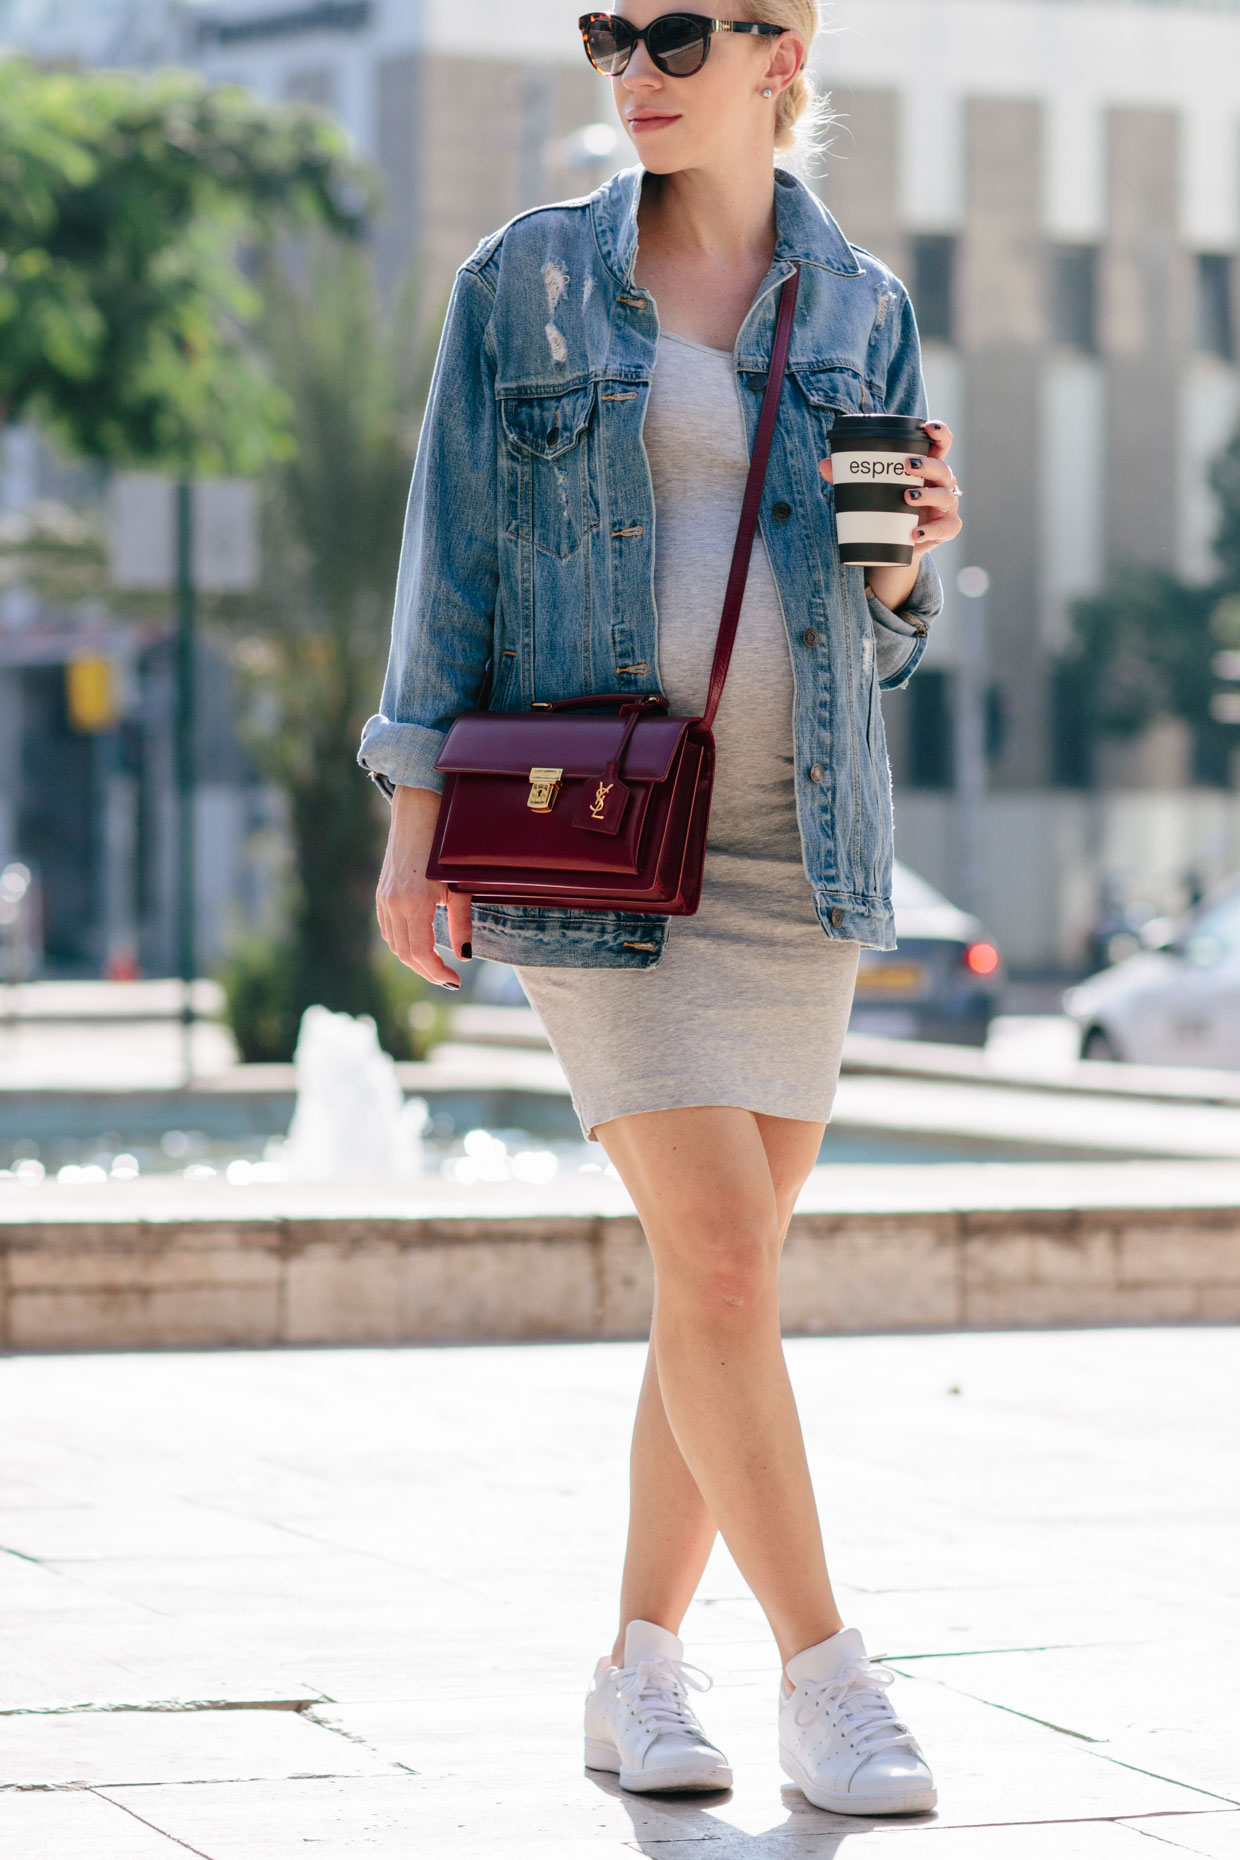 Gal year bodycon dress with denim jacket and pants